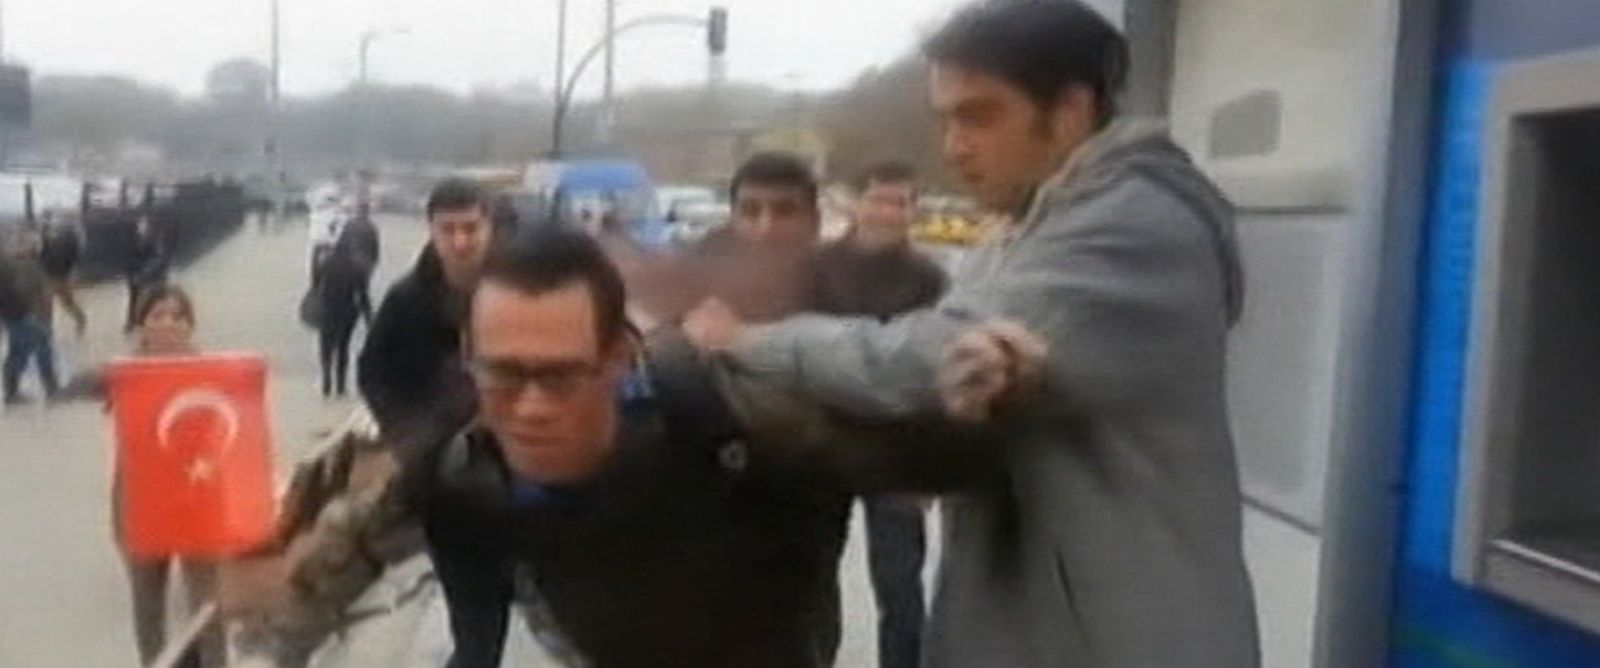 PHOTO: Three U.S. sailors were assaulted by about 20 people on the streets of Istanbul, Turkey.